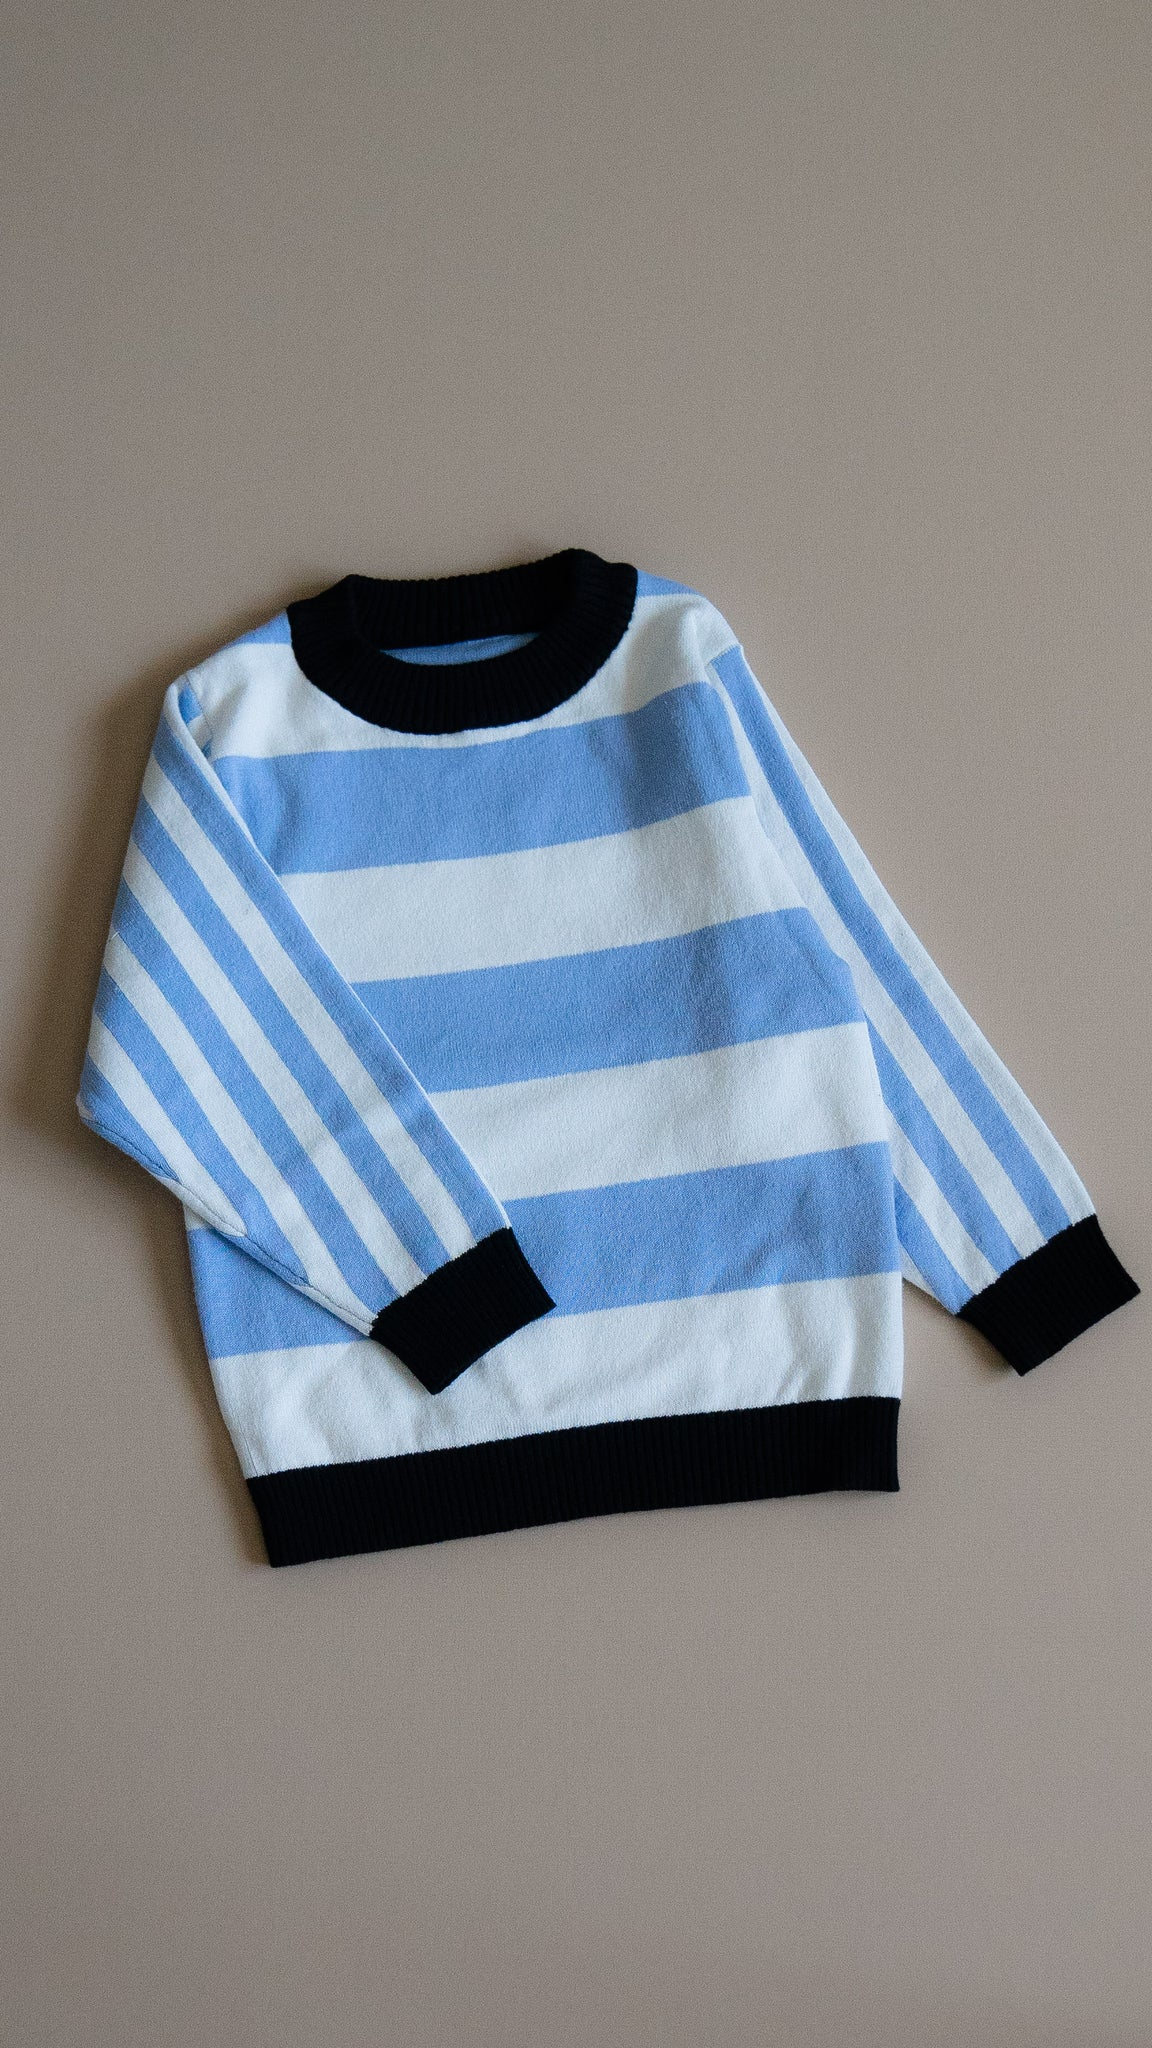 'rei' knit sweater / blue stripes